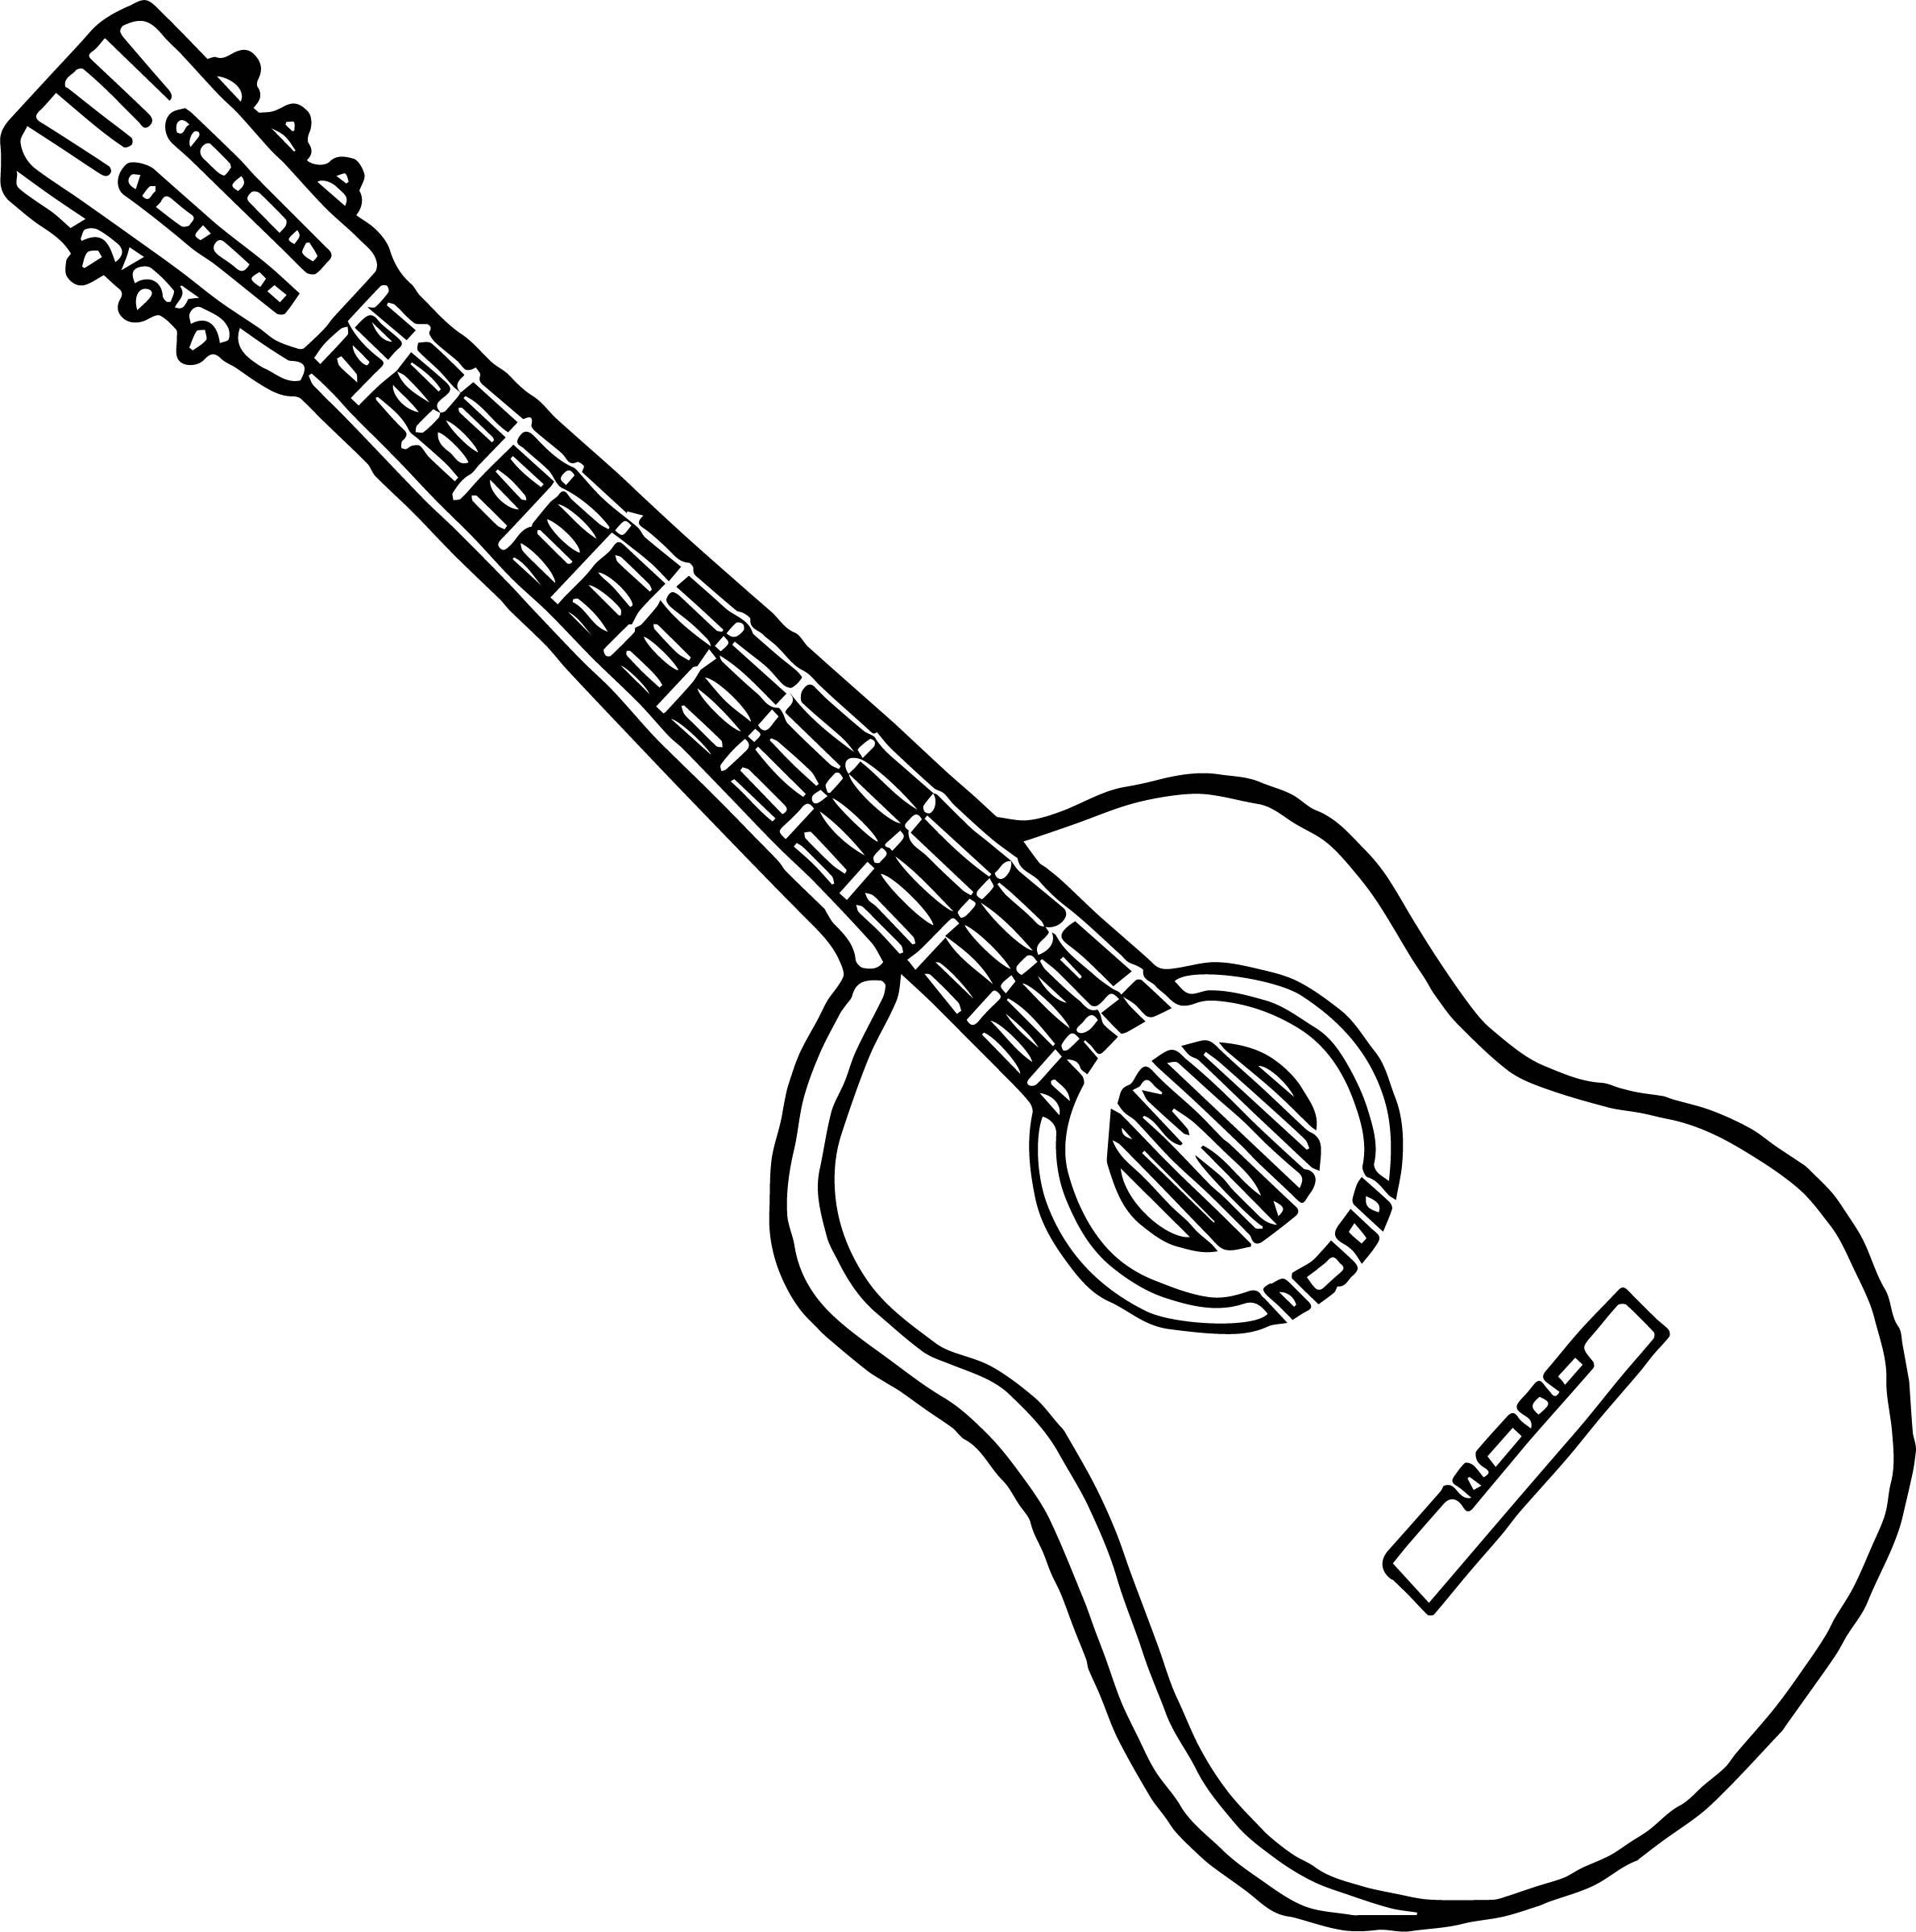 Surprising Guitar Coloring Page Coloring Pages Online Coloring Pages Coloring Sheets For Kids